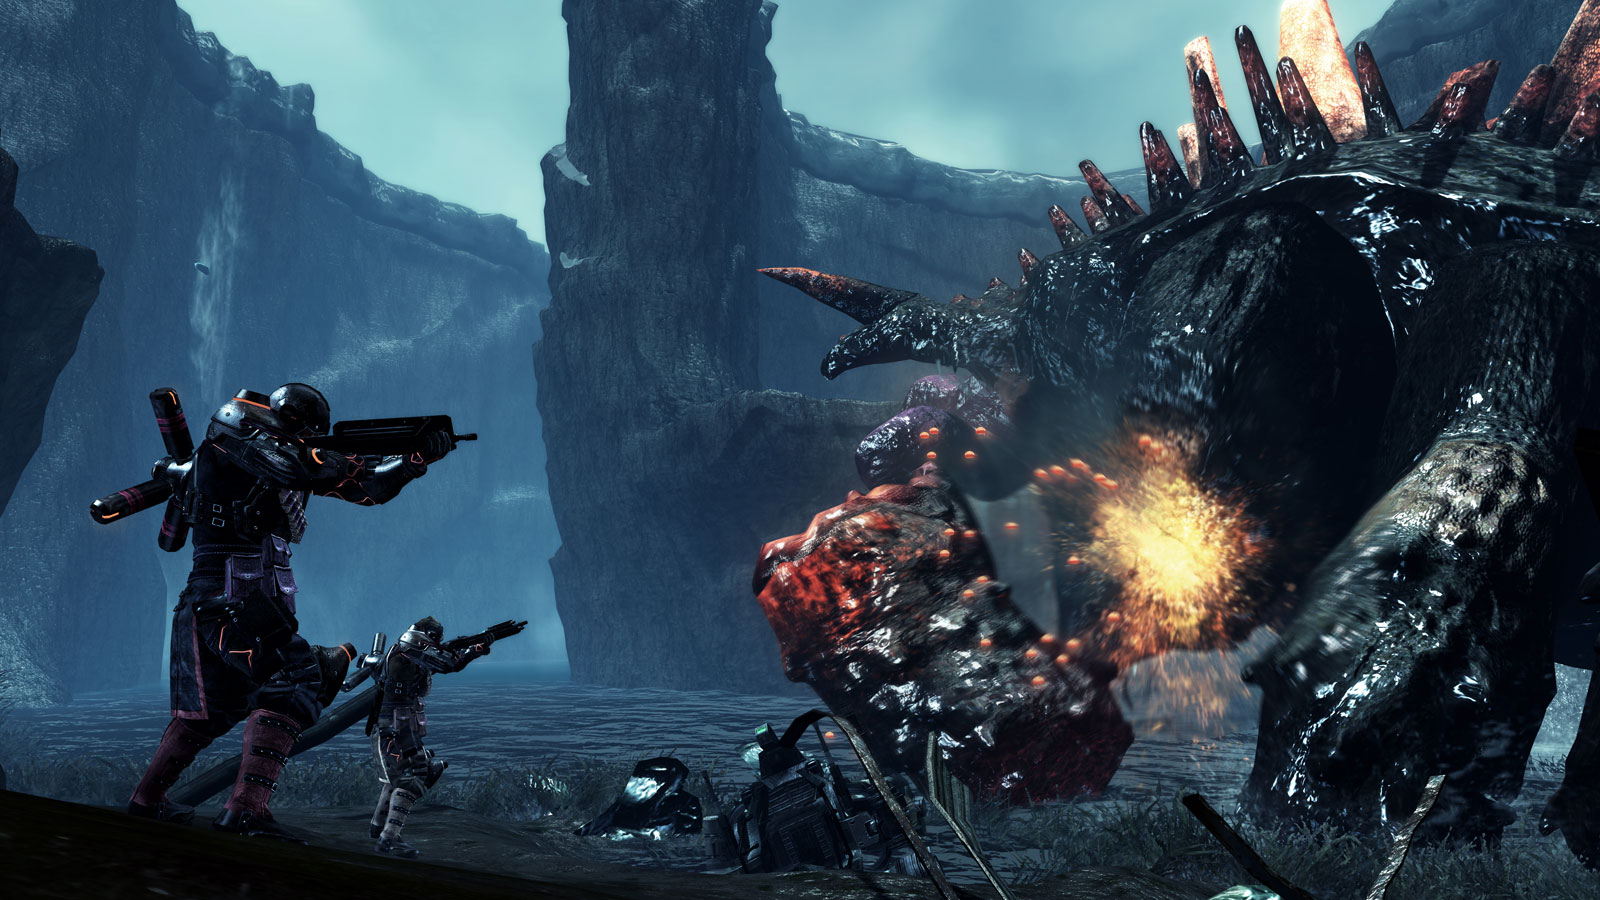 Free Download Game Lost Planet 2 2010 Pc Eng Iso Full